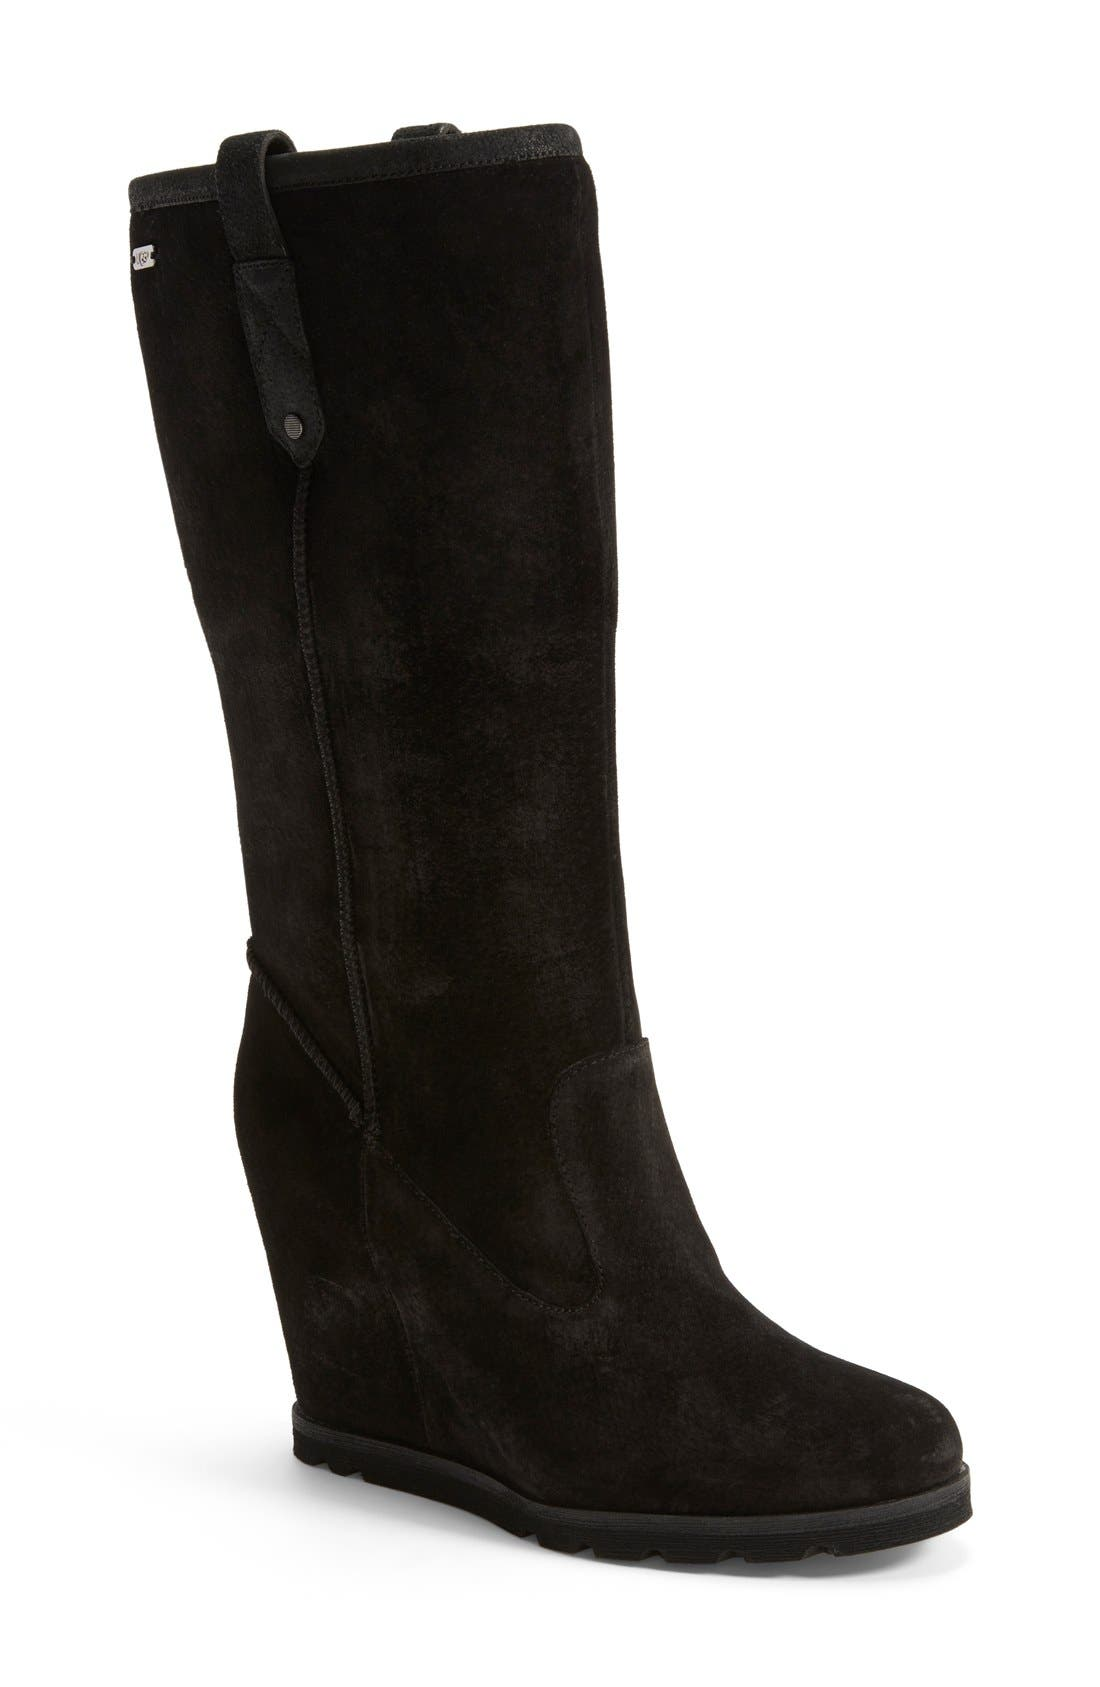 Alternate Image 1 Selected - UGG® Australia 'Soleil' Water Resistant Boot (Women)